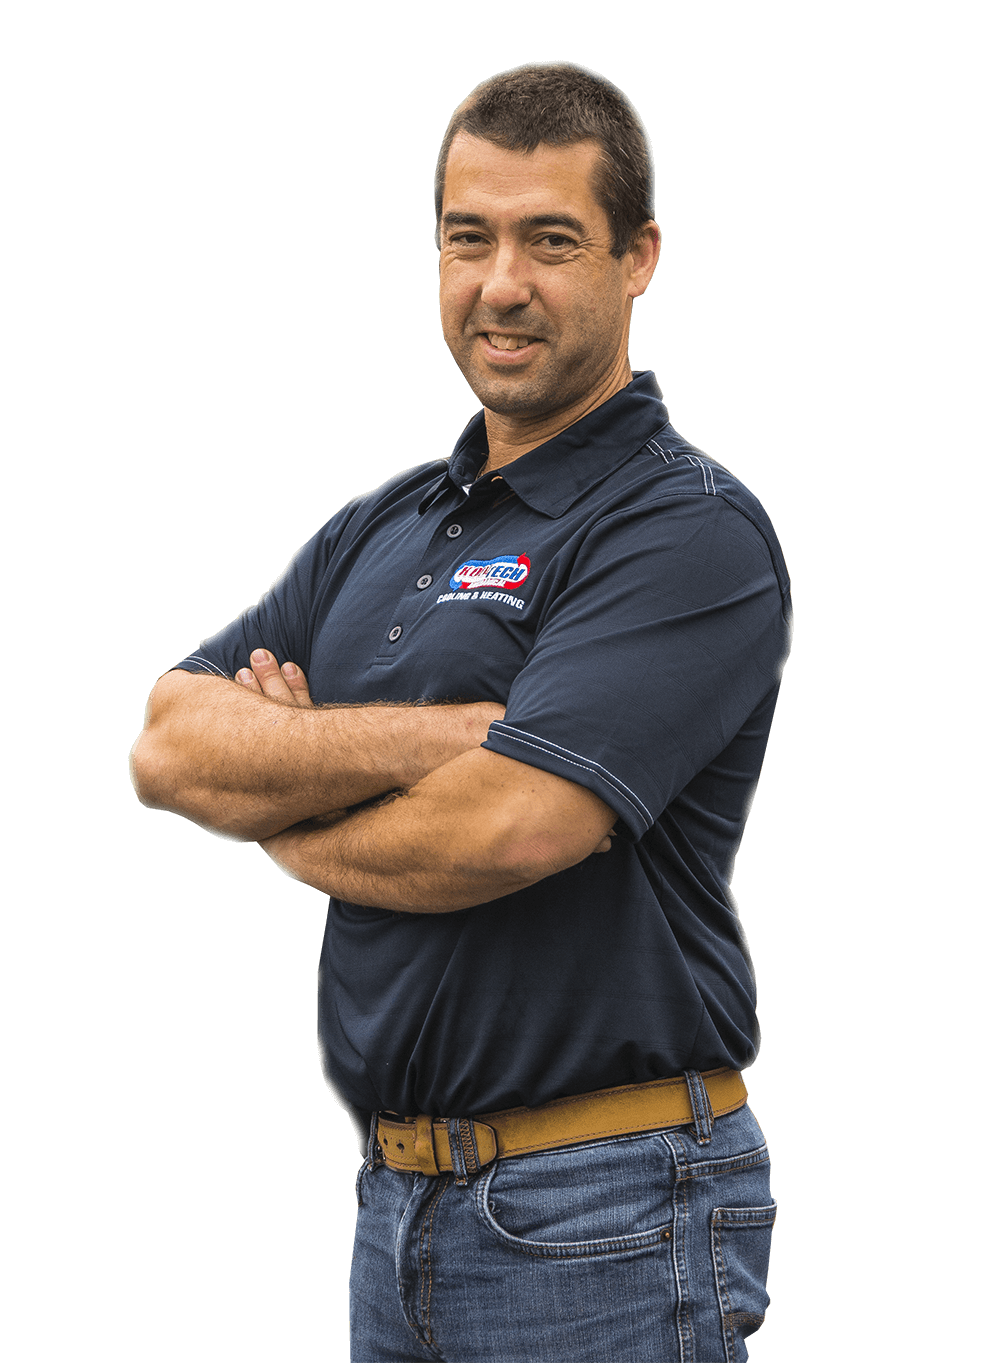 Marc Habel of Kooltech Mechanical, expert in Furnace, Air Conditioner and Air Quality Systems